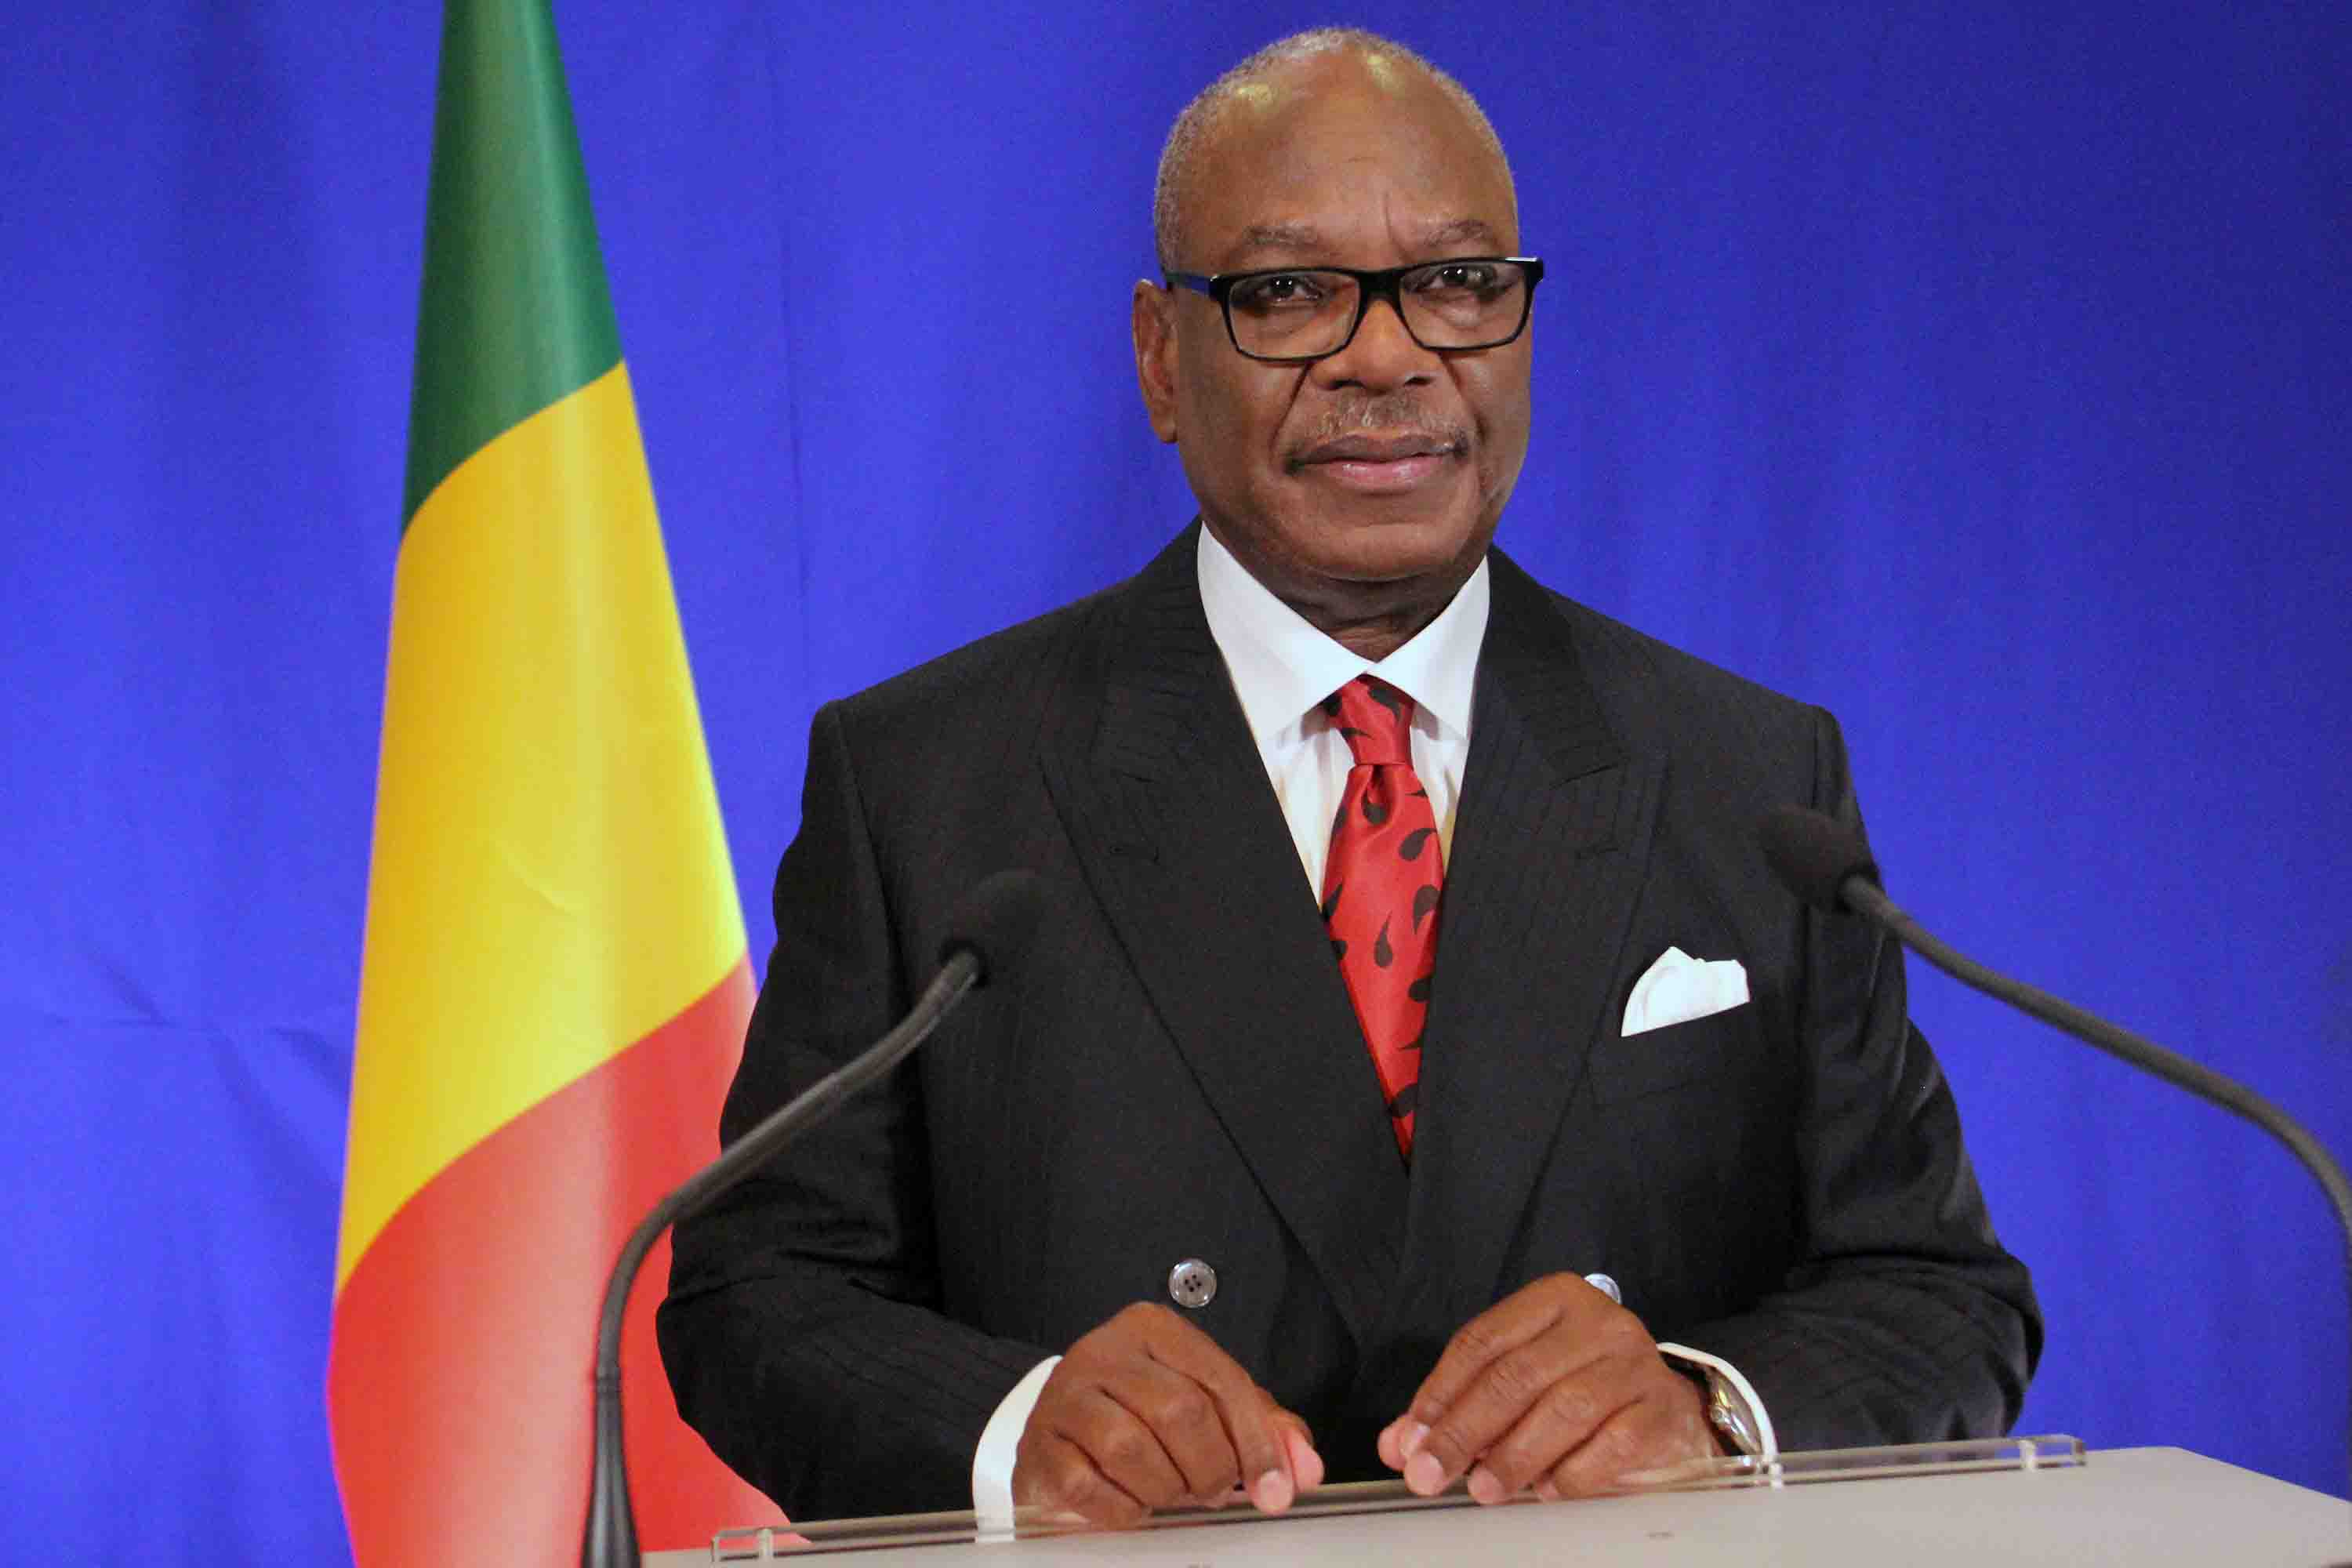 Mali's incumbent president, Ibrahim Keita, adopted to run for second term